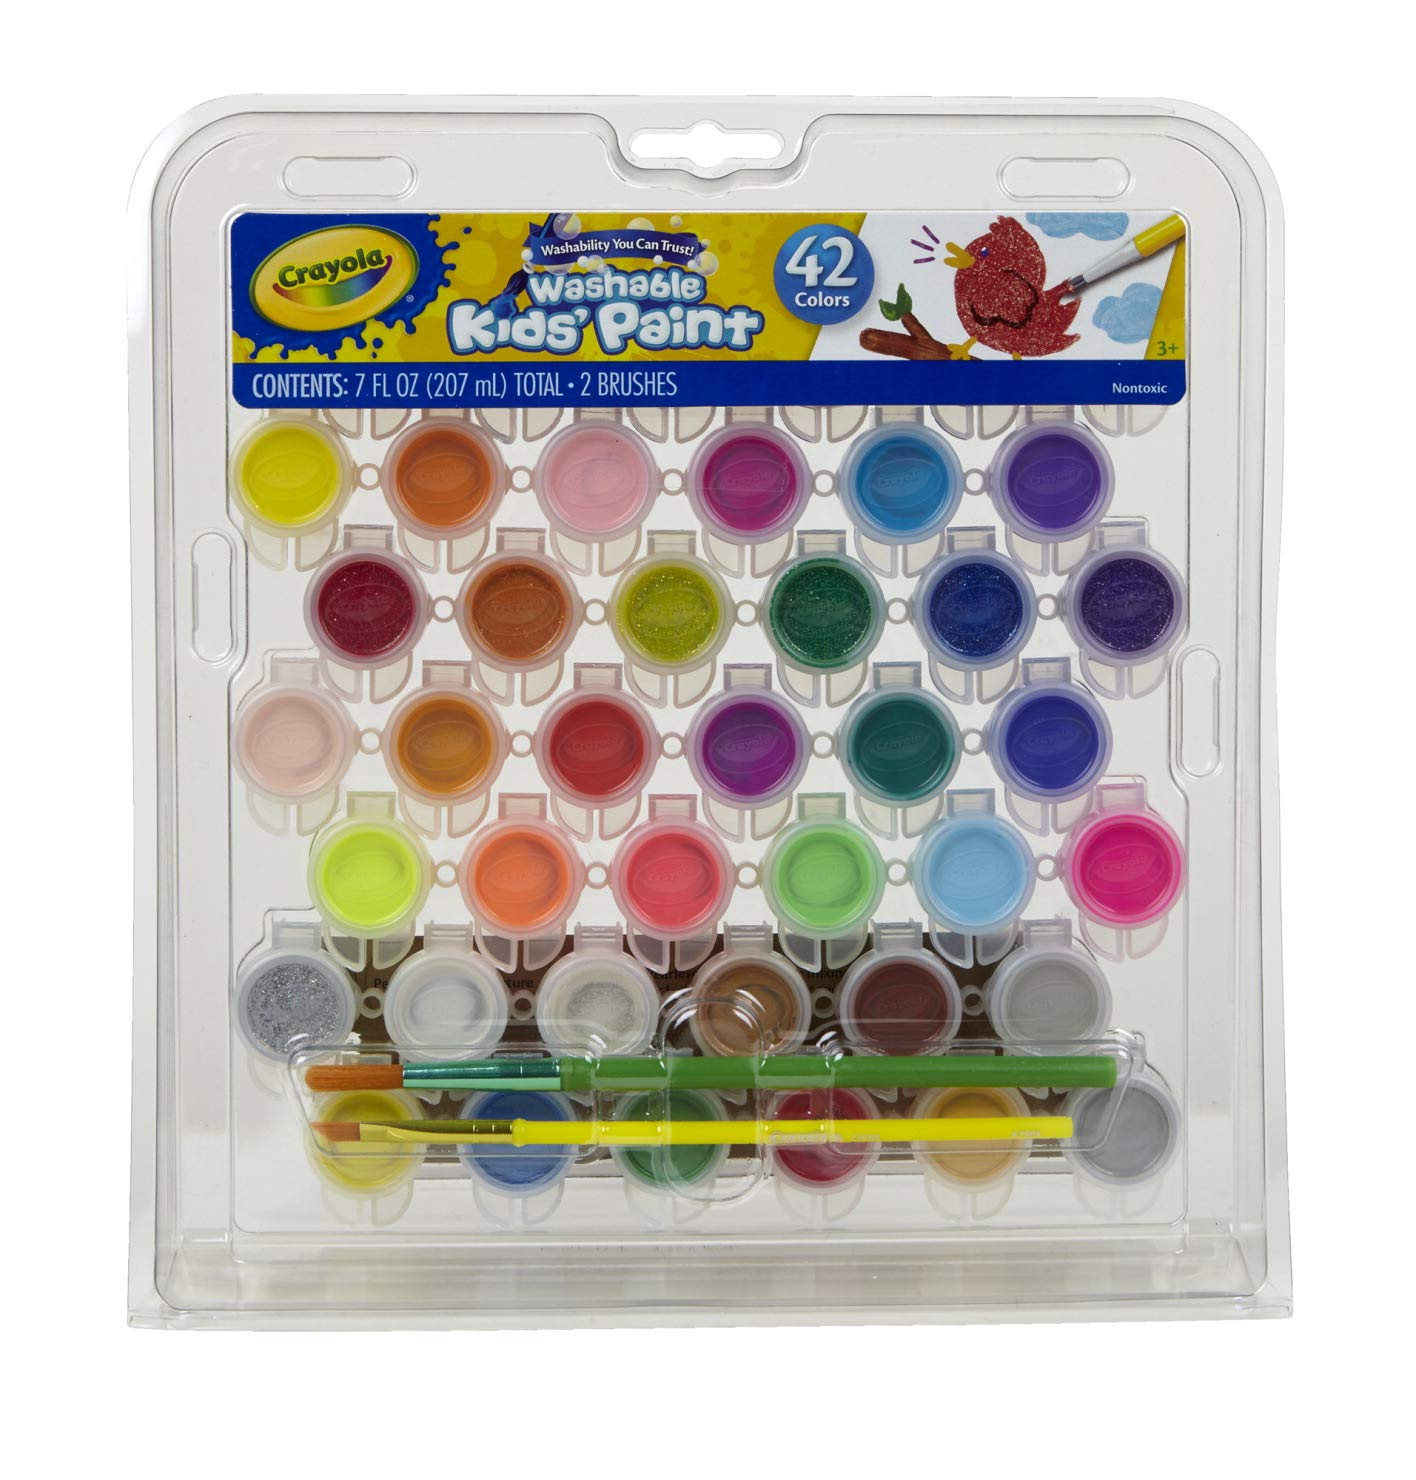 Crayola Kid's Washable Paint Set, 42 Ct., Gift for Kids, Ages 3, 4, 5, 6, 7 by Crayola